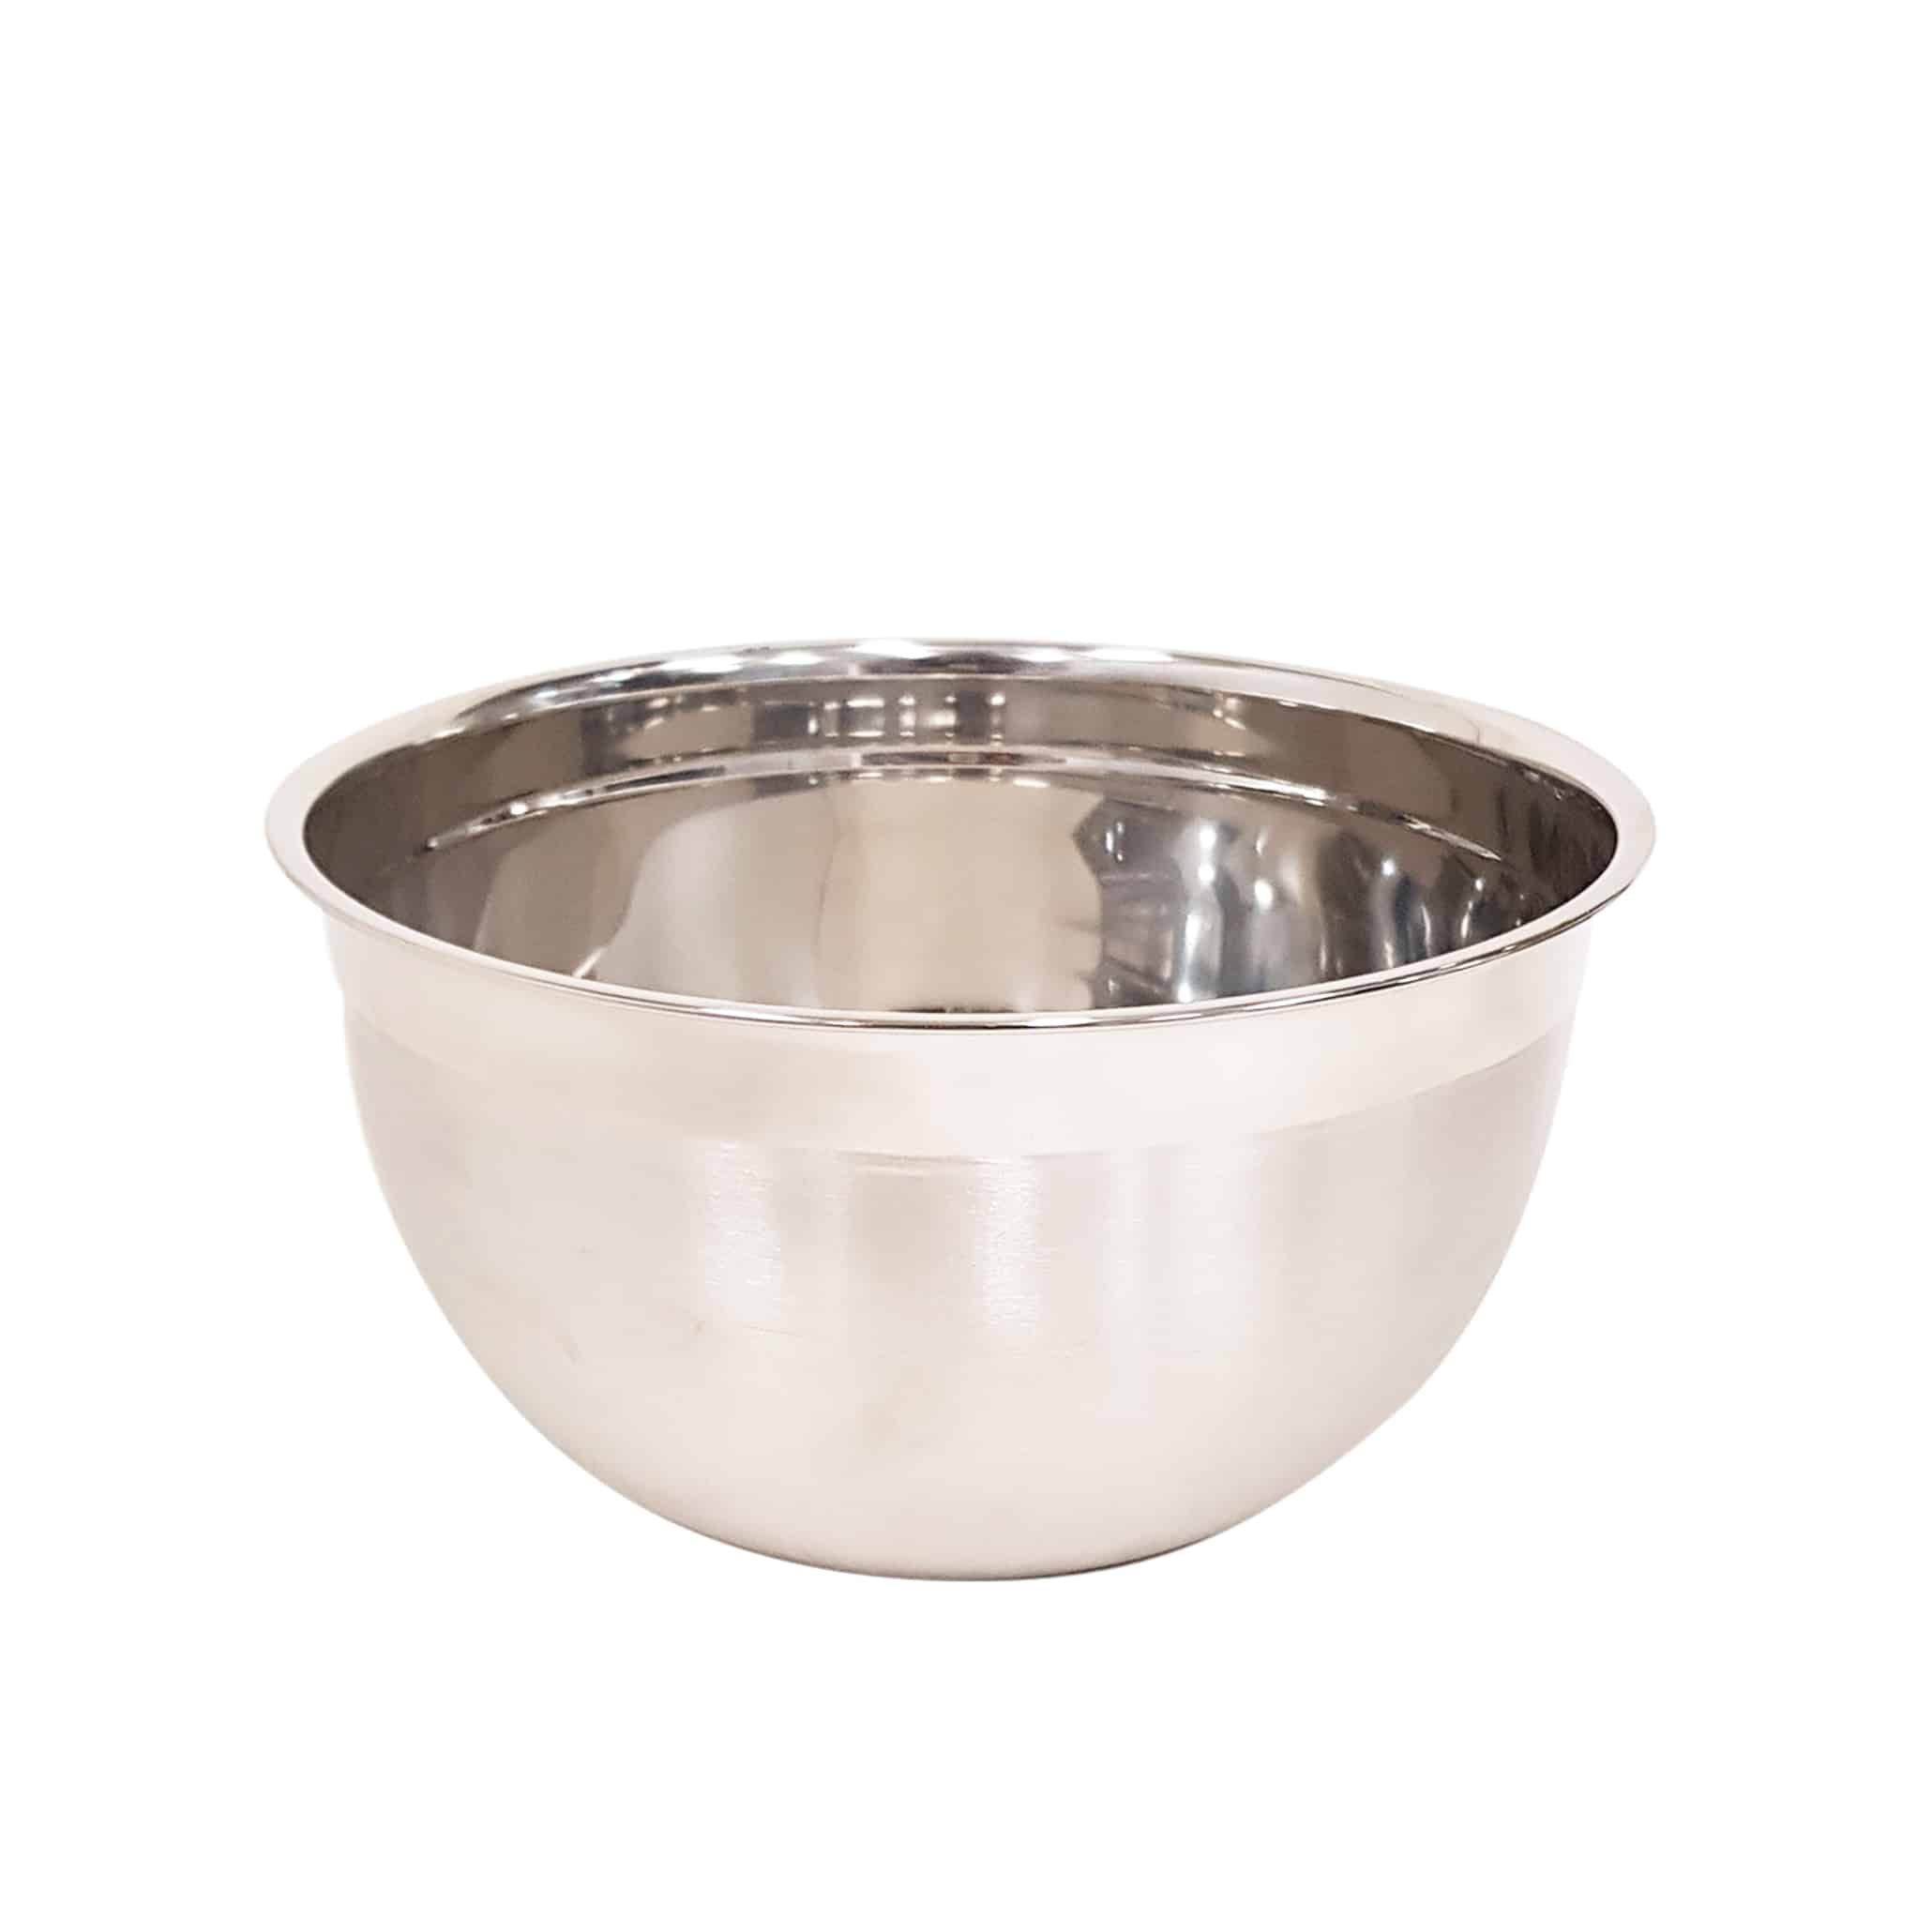 KH Stainless Steel Euro Mixing Bowl Heavy Duty 7.5lt